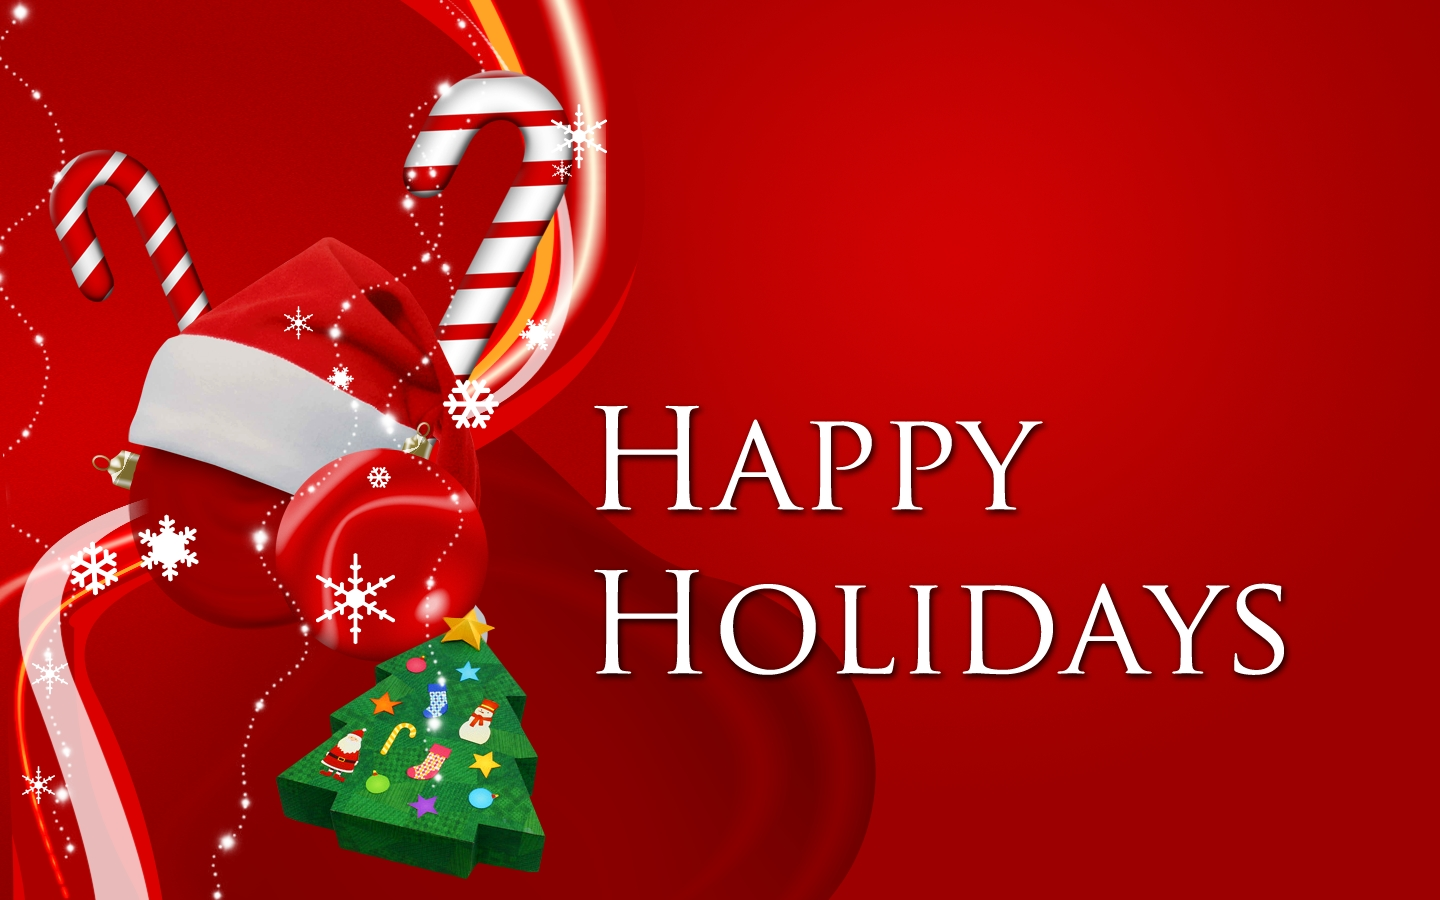 10 Top Happy Holidays Wallpapers Desktop FULL HD 1920×1080 For PC Background